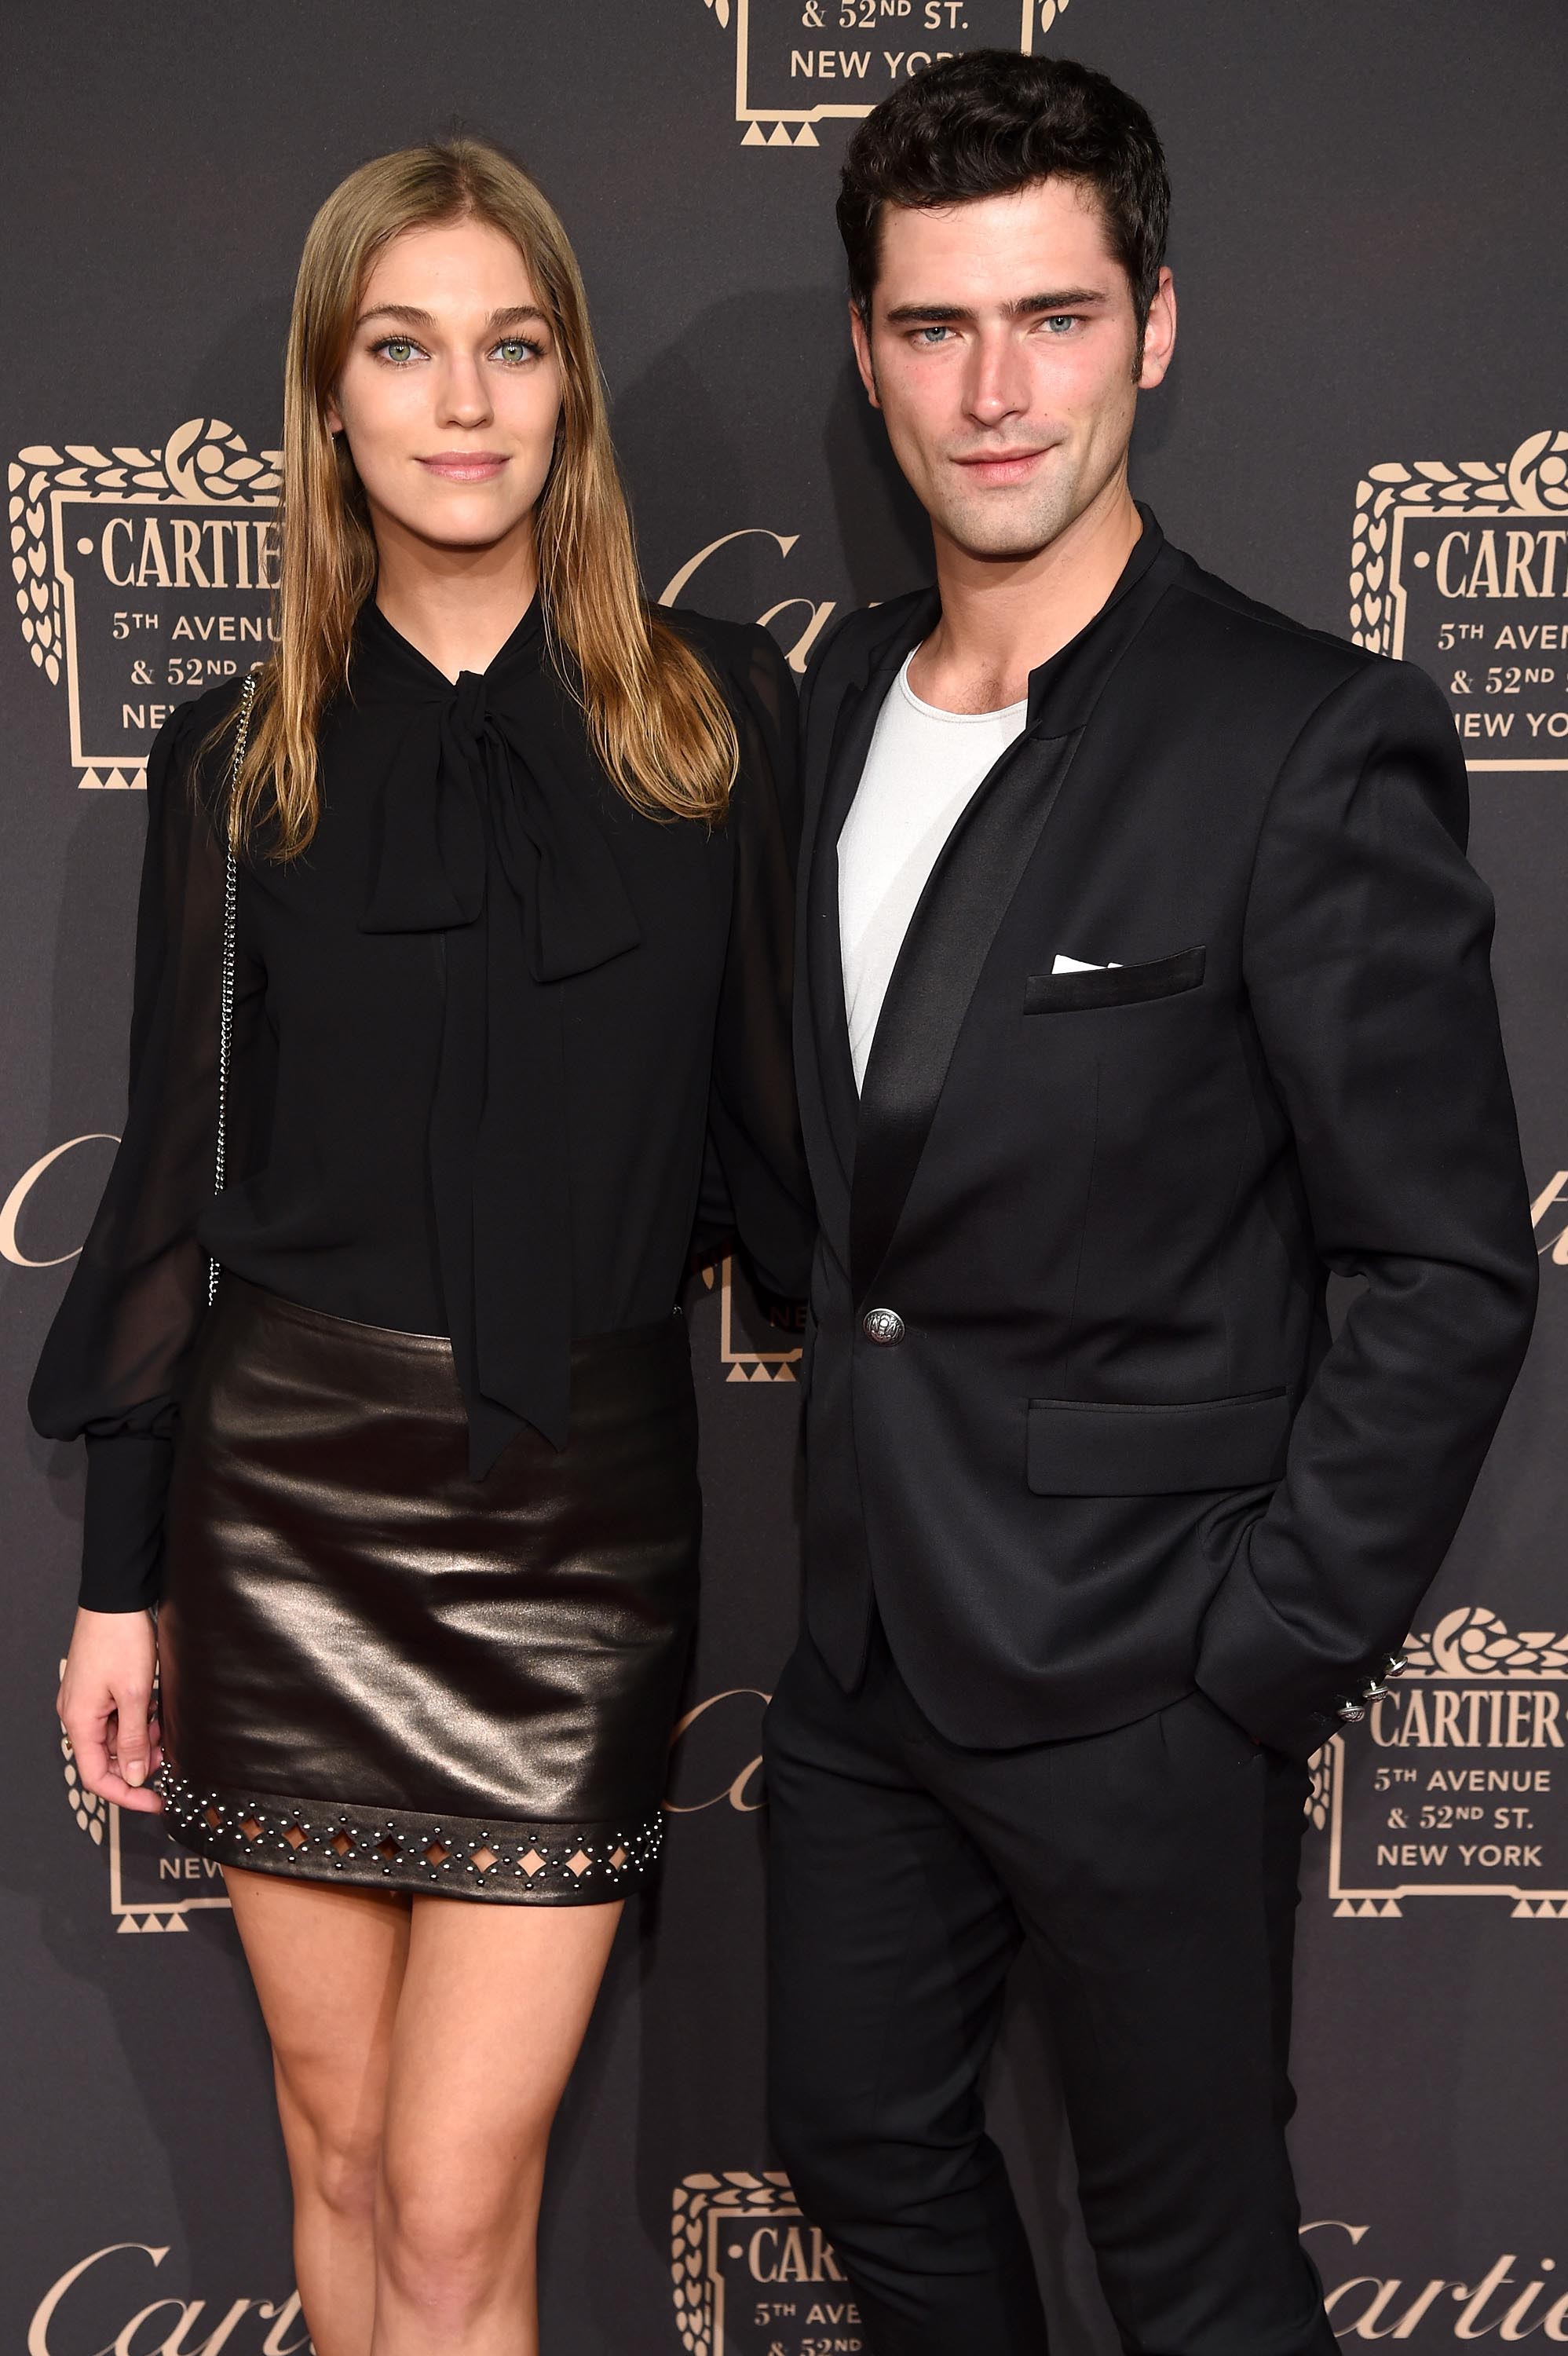 Samantha Gradoville attends the Cartier Fifth Avenue Grand Reopening Event